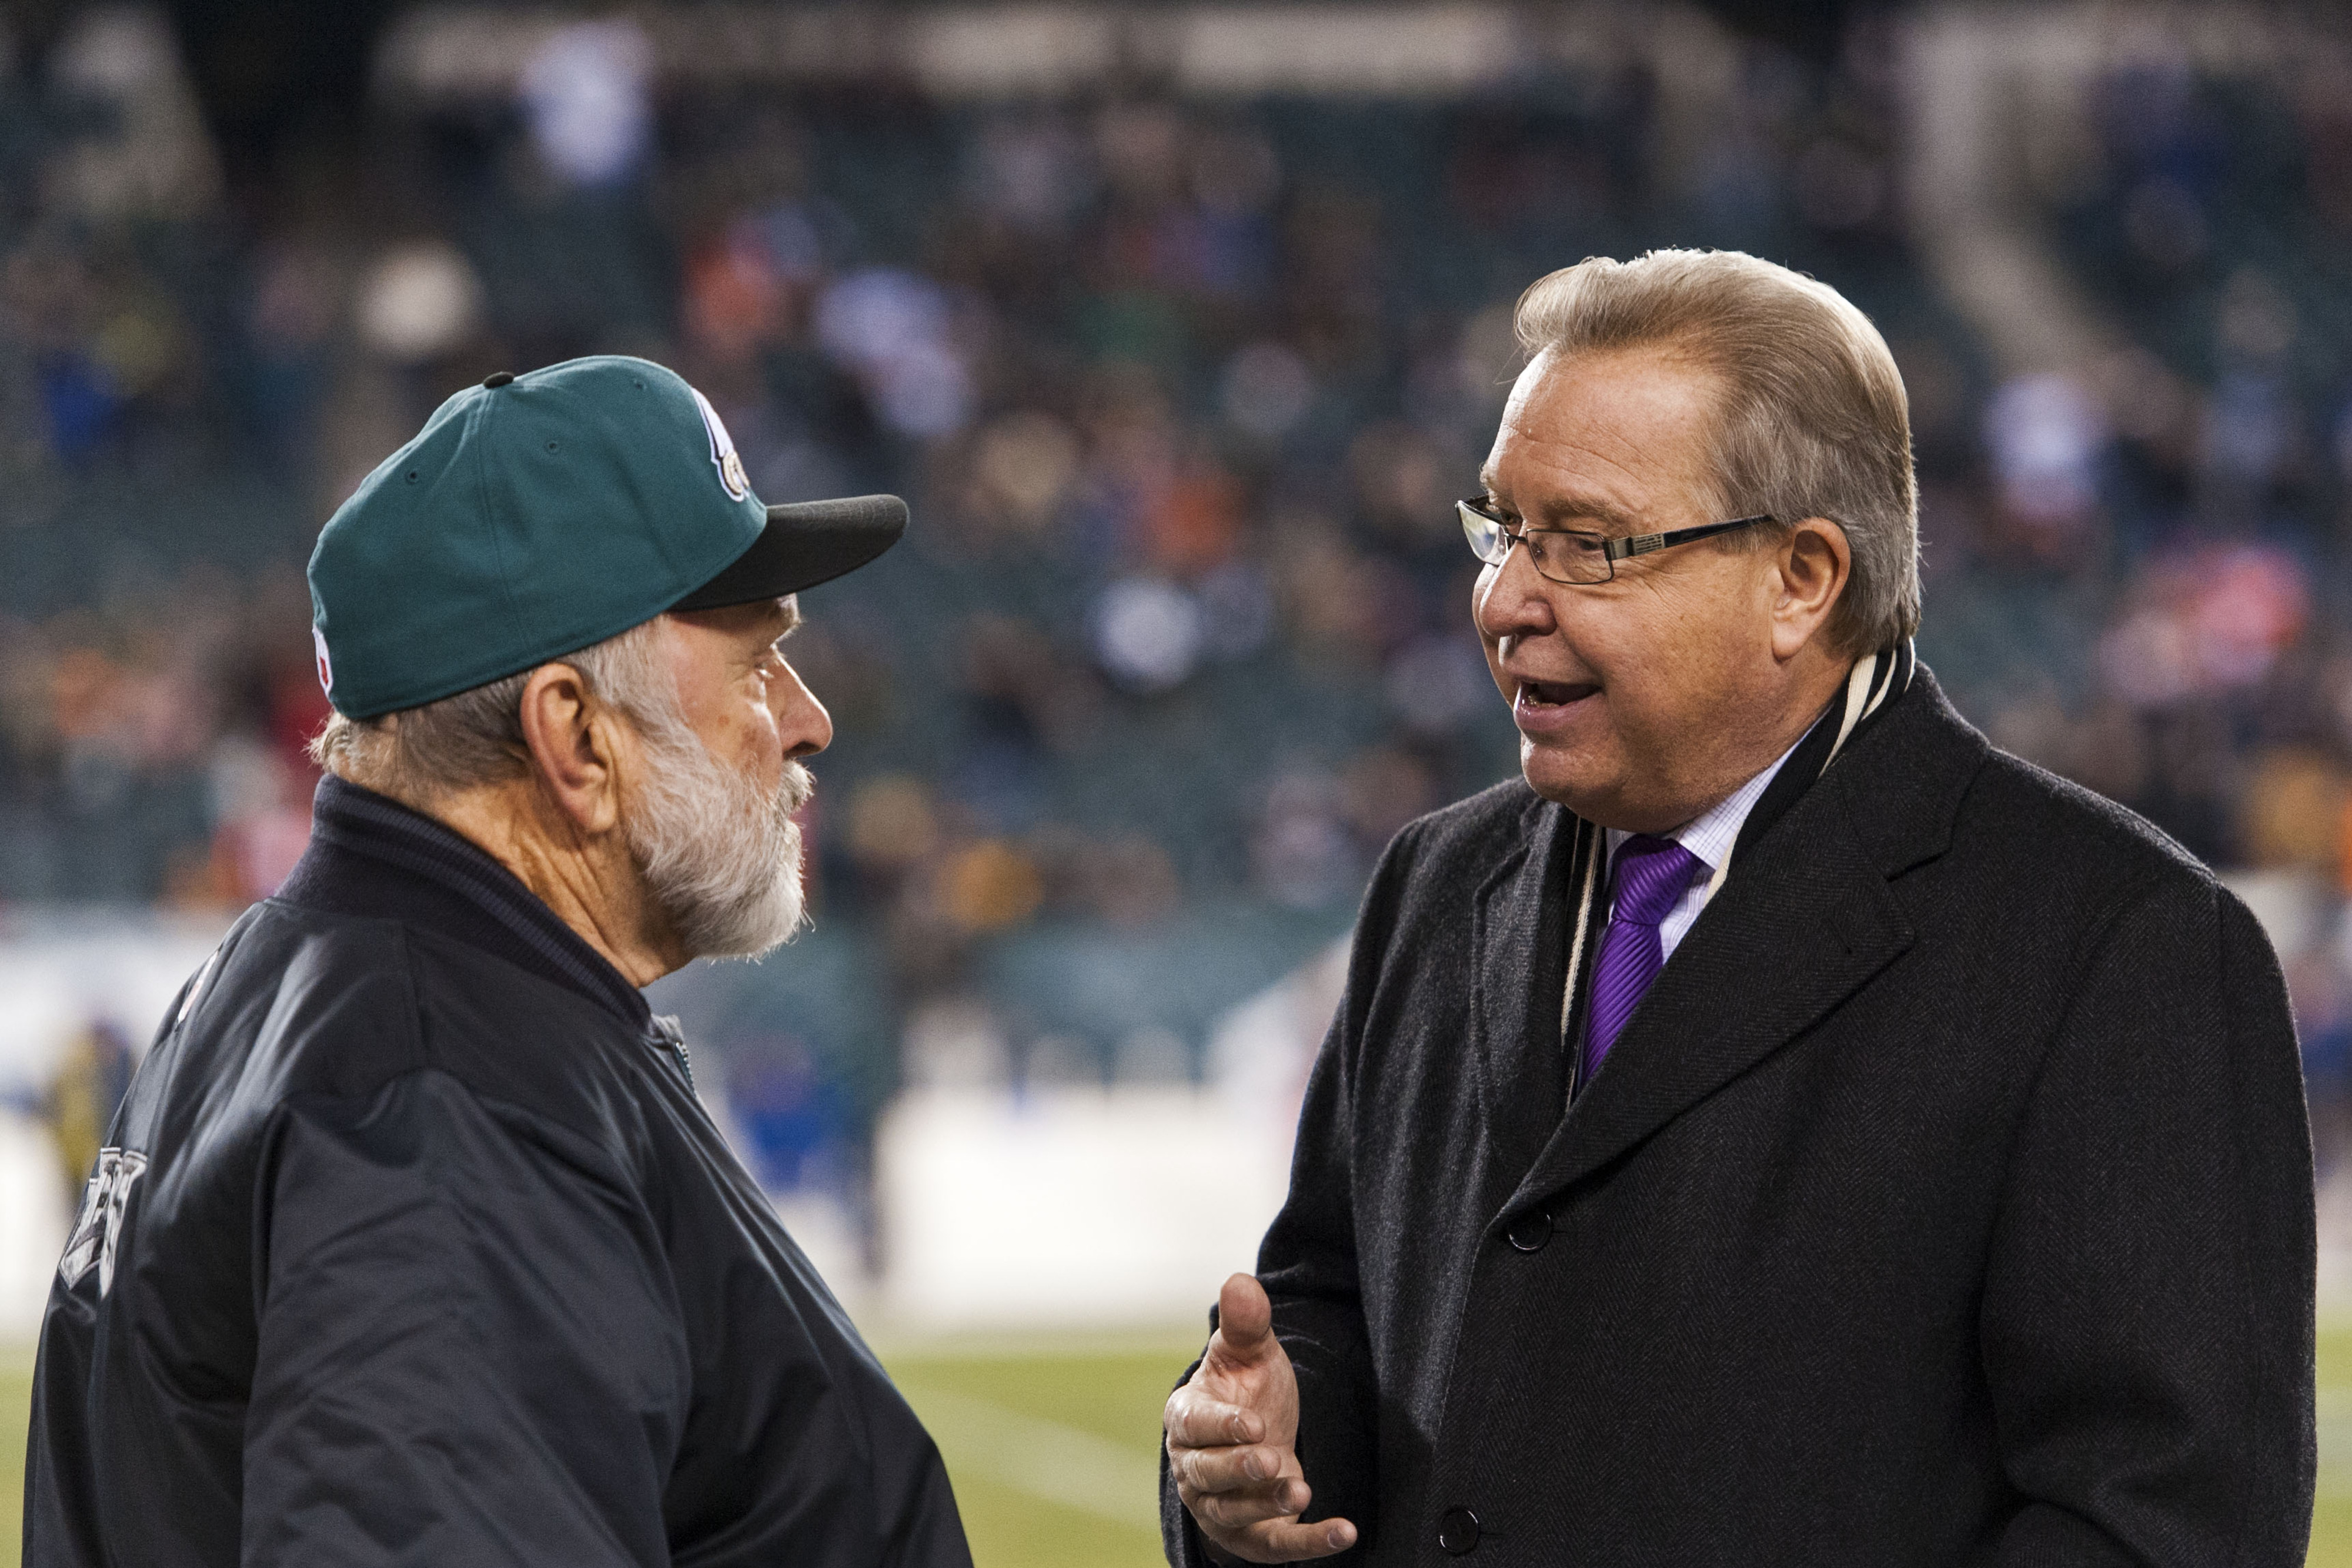 Ron Jaworski and the next round of Johnny Manziel controversy